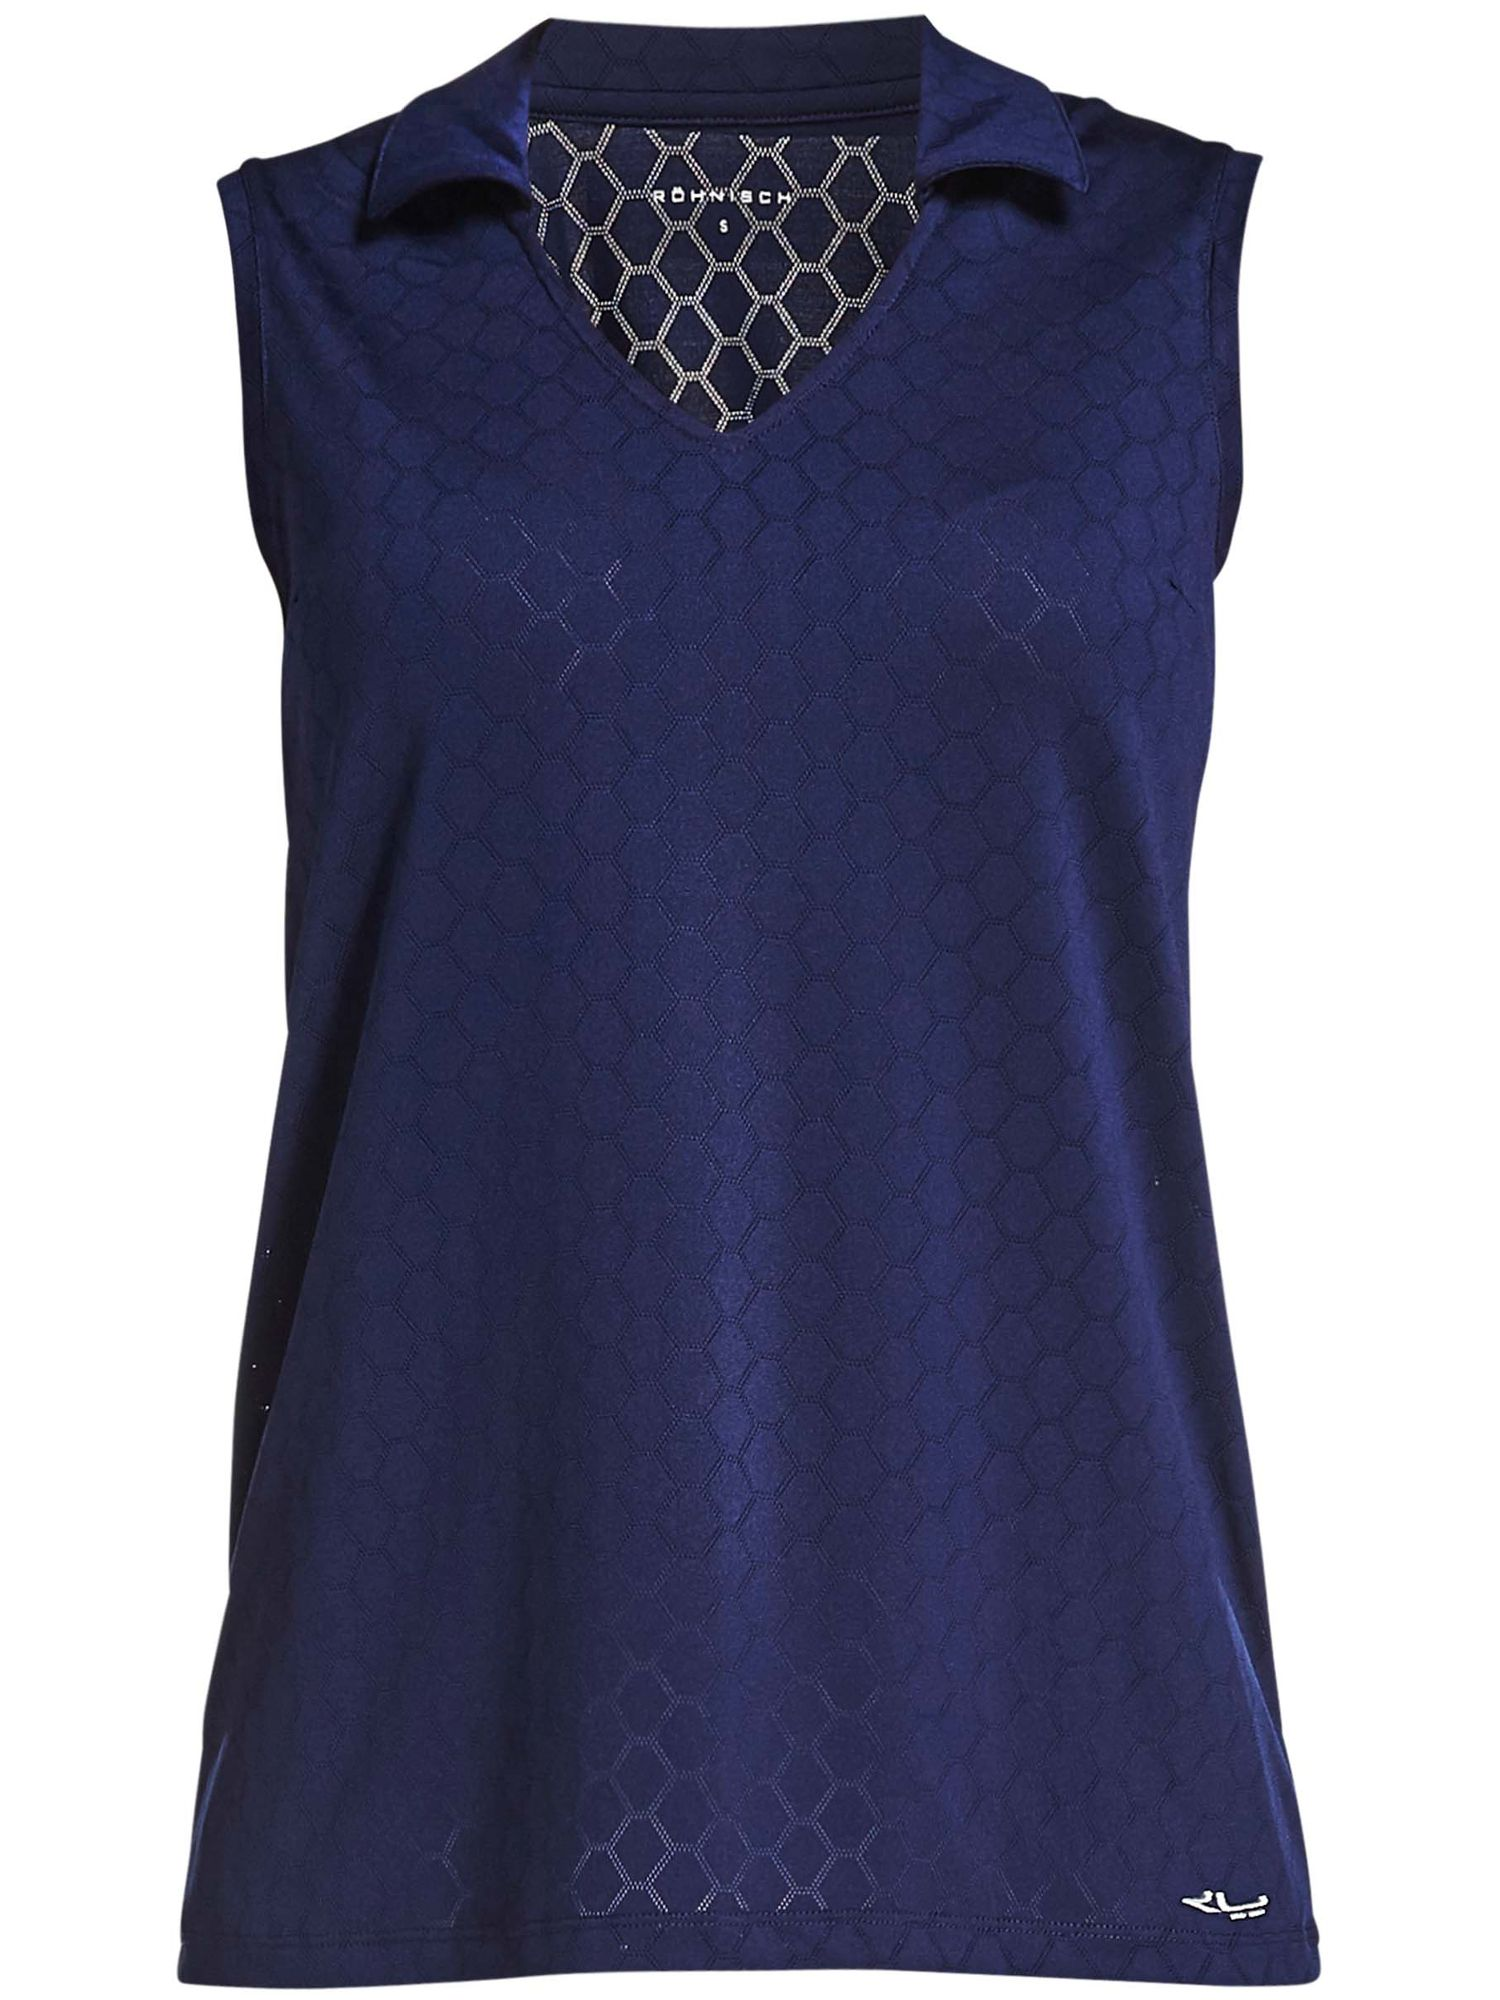 Rohnisch Jacquard Sleeveless Polo, Blue